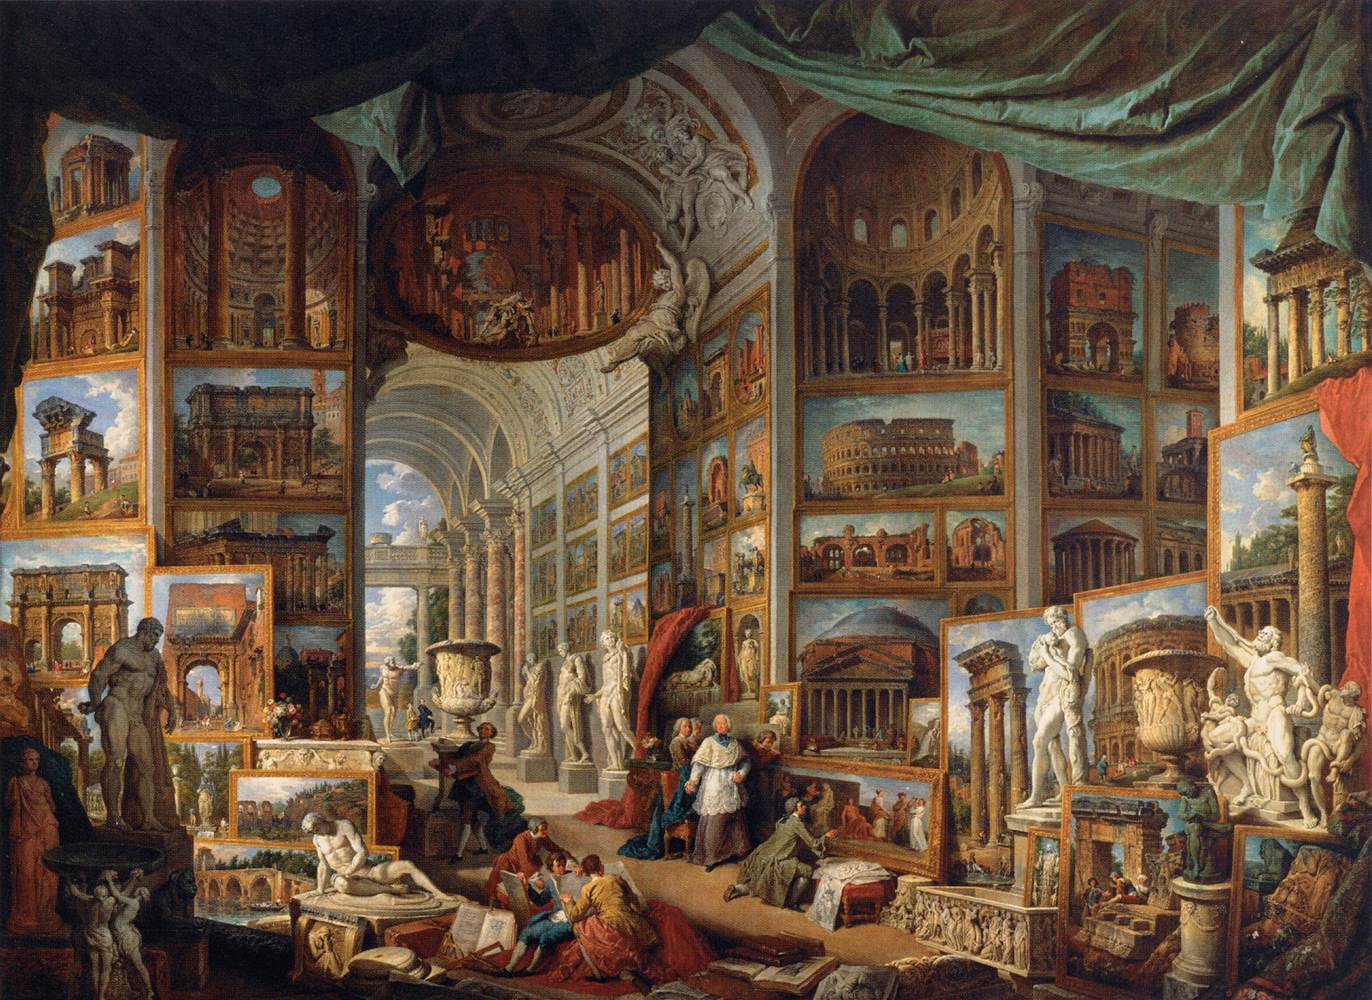 Gallery of Views of Ancient Rome by PANNINI, Giovanni Paolo